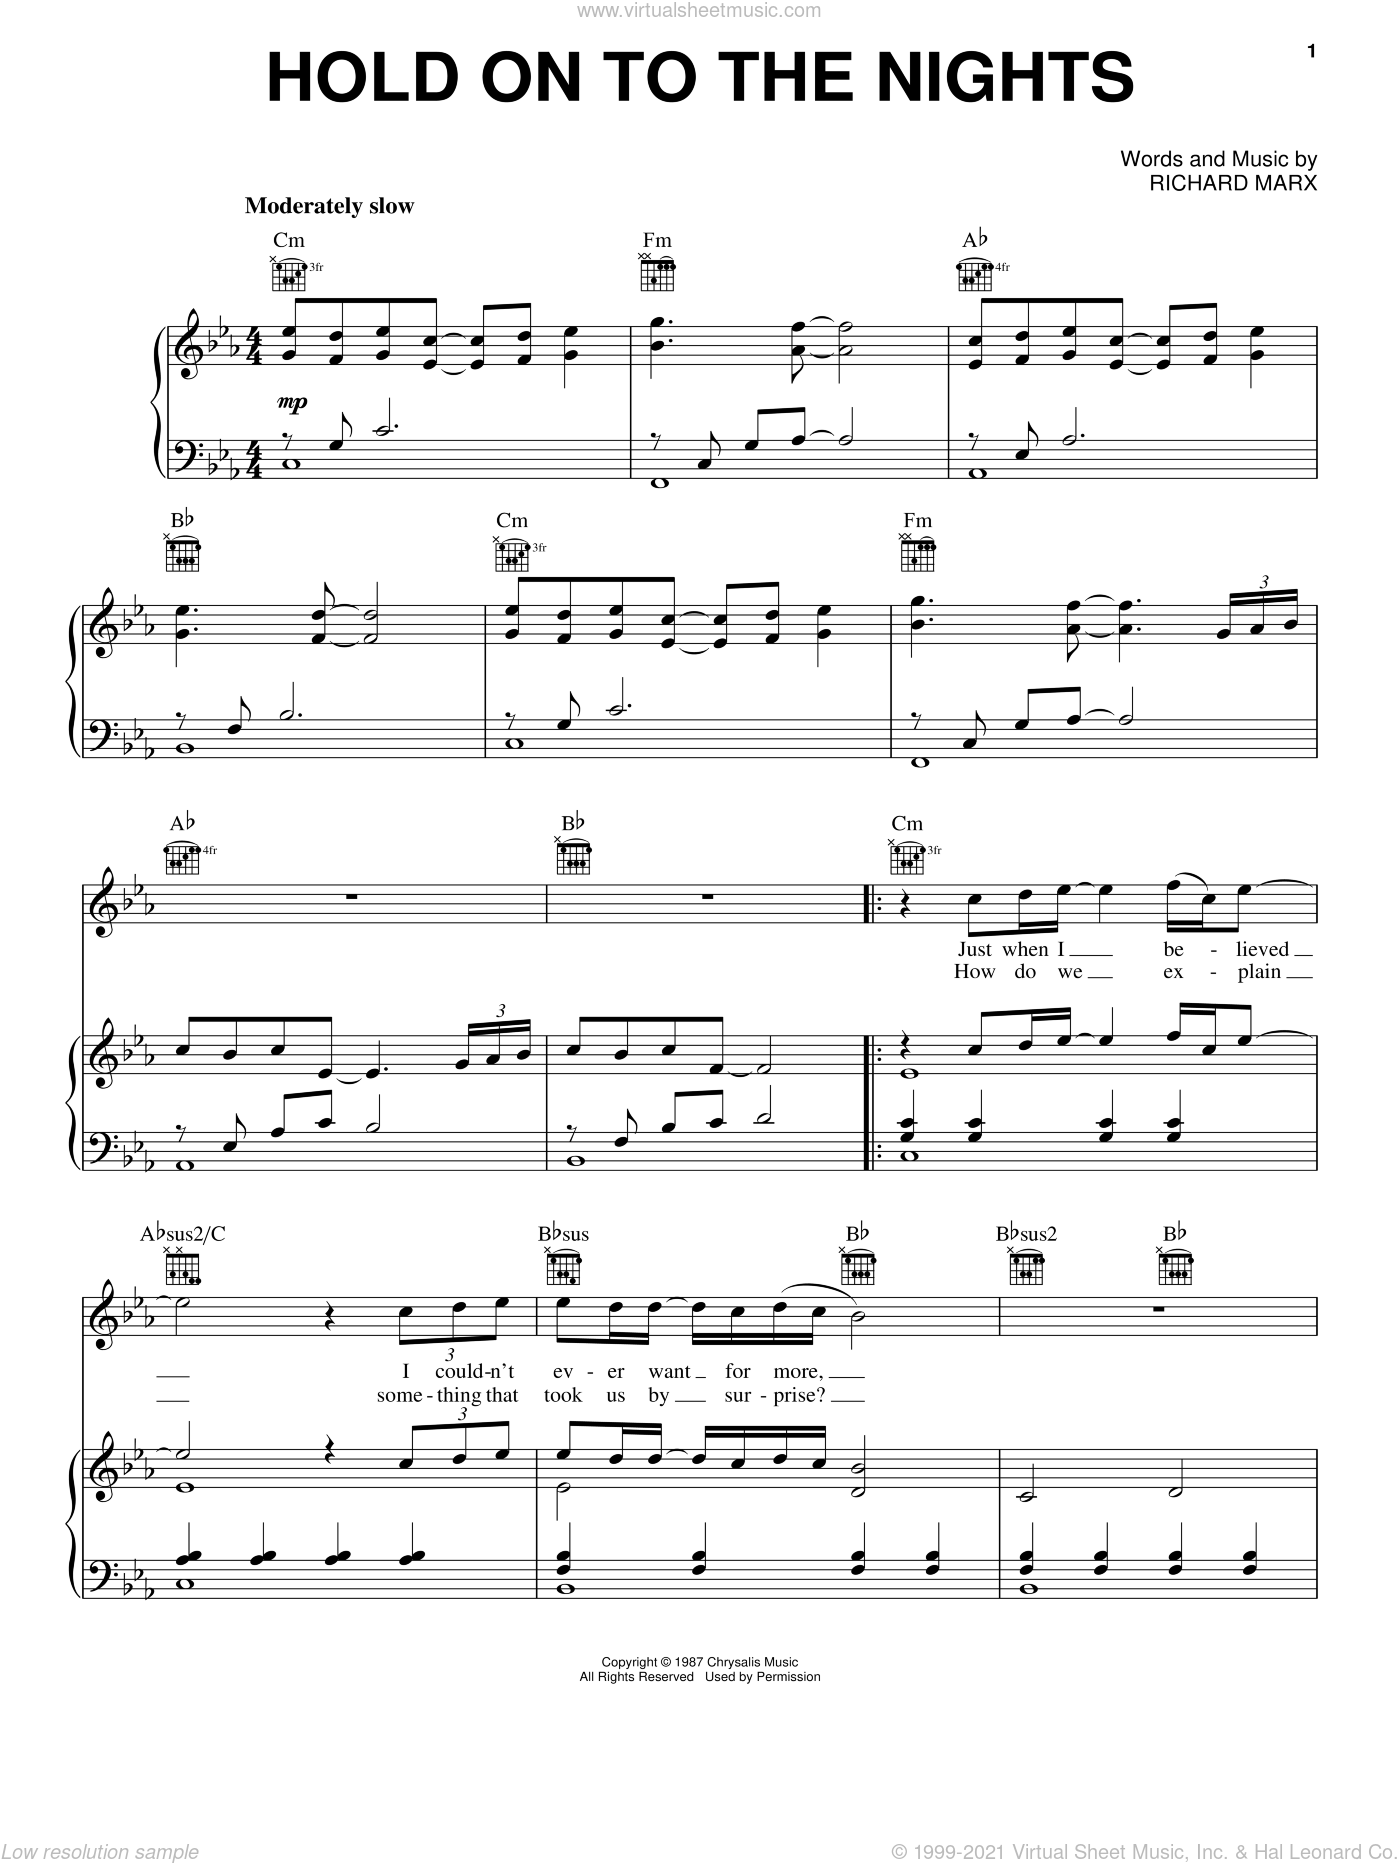 Hold On To The Nights sheet music for voice, piano or guitar by Richard Marx, intermediate skill level